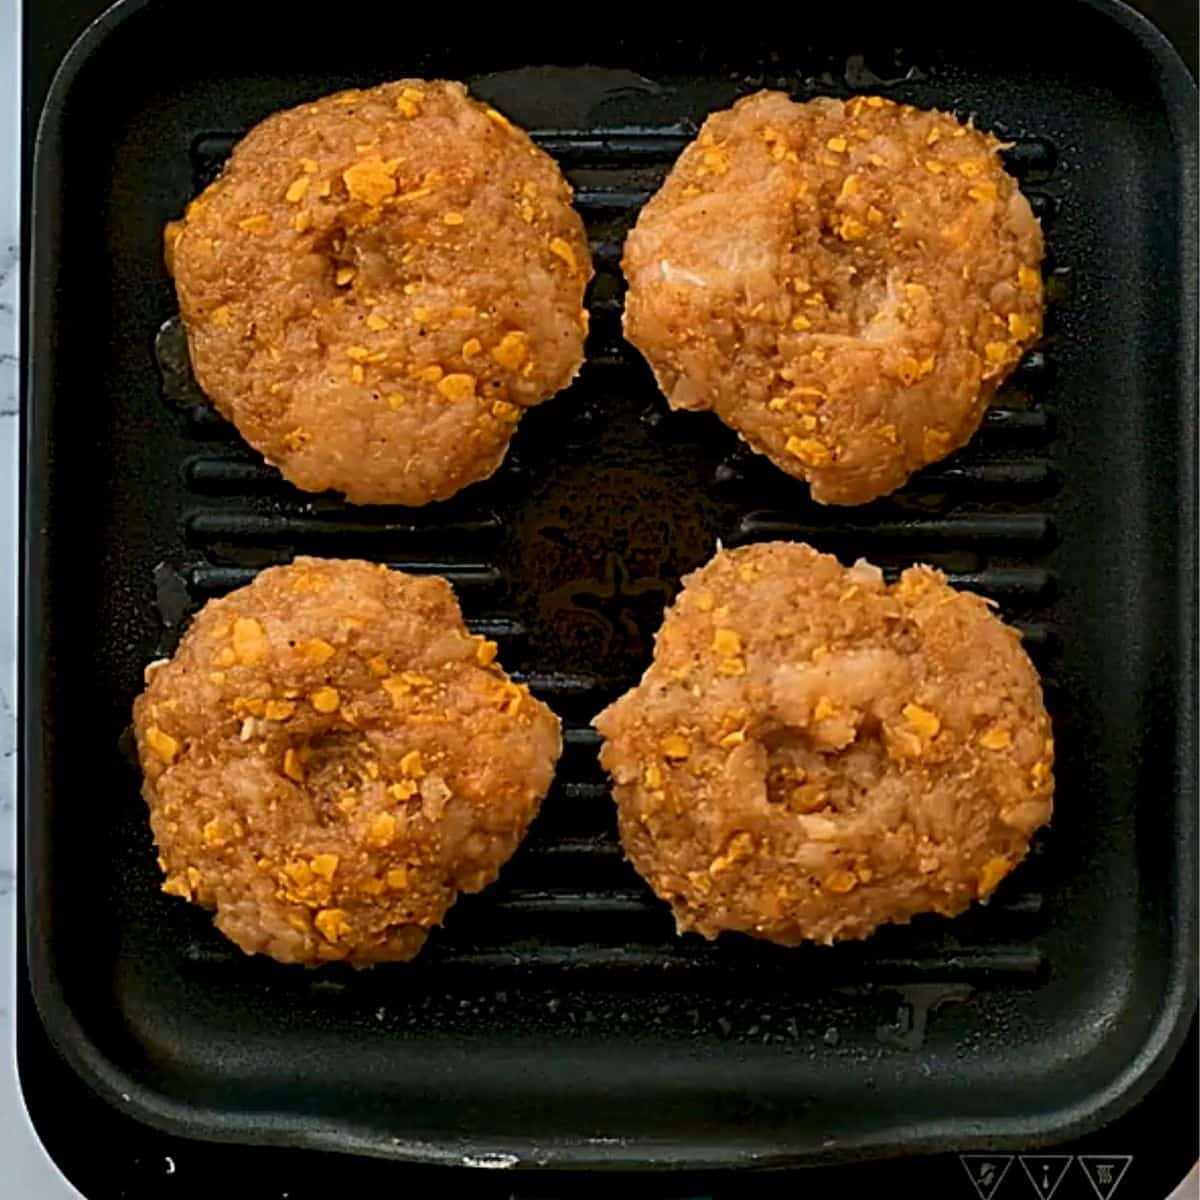 Four chicken burger patties on grill top.